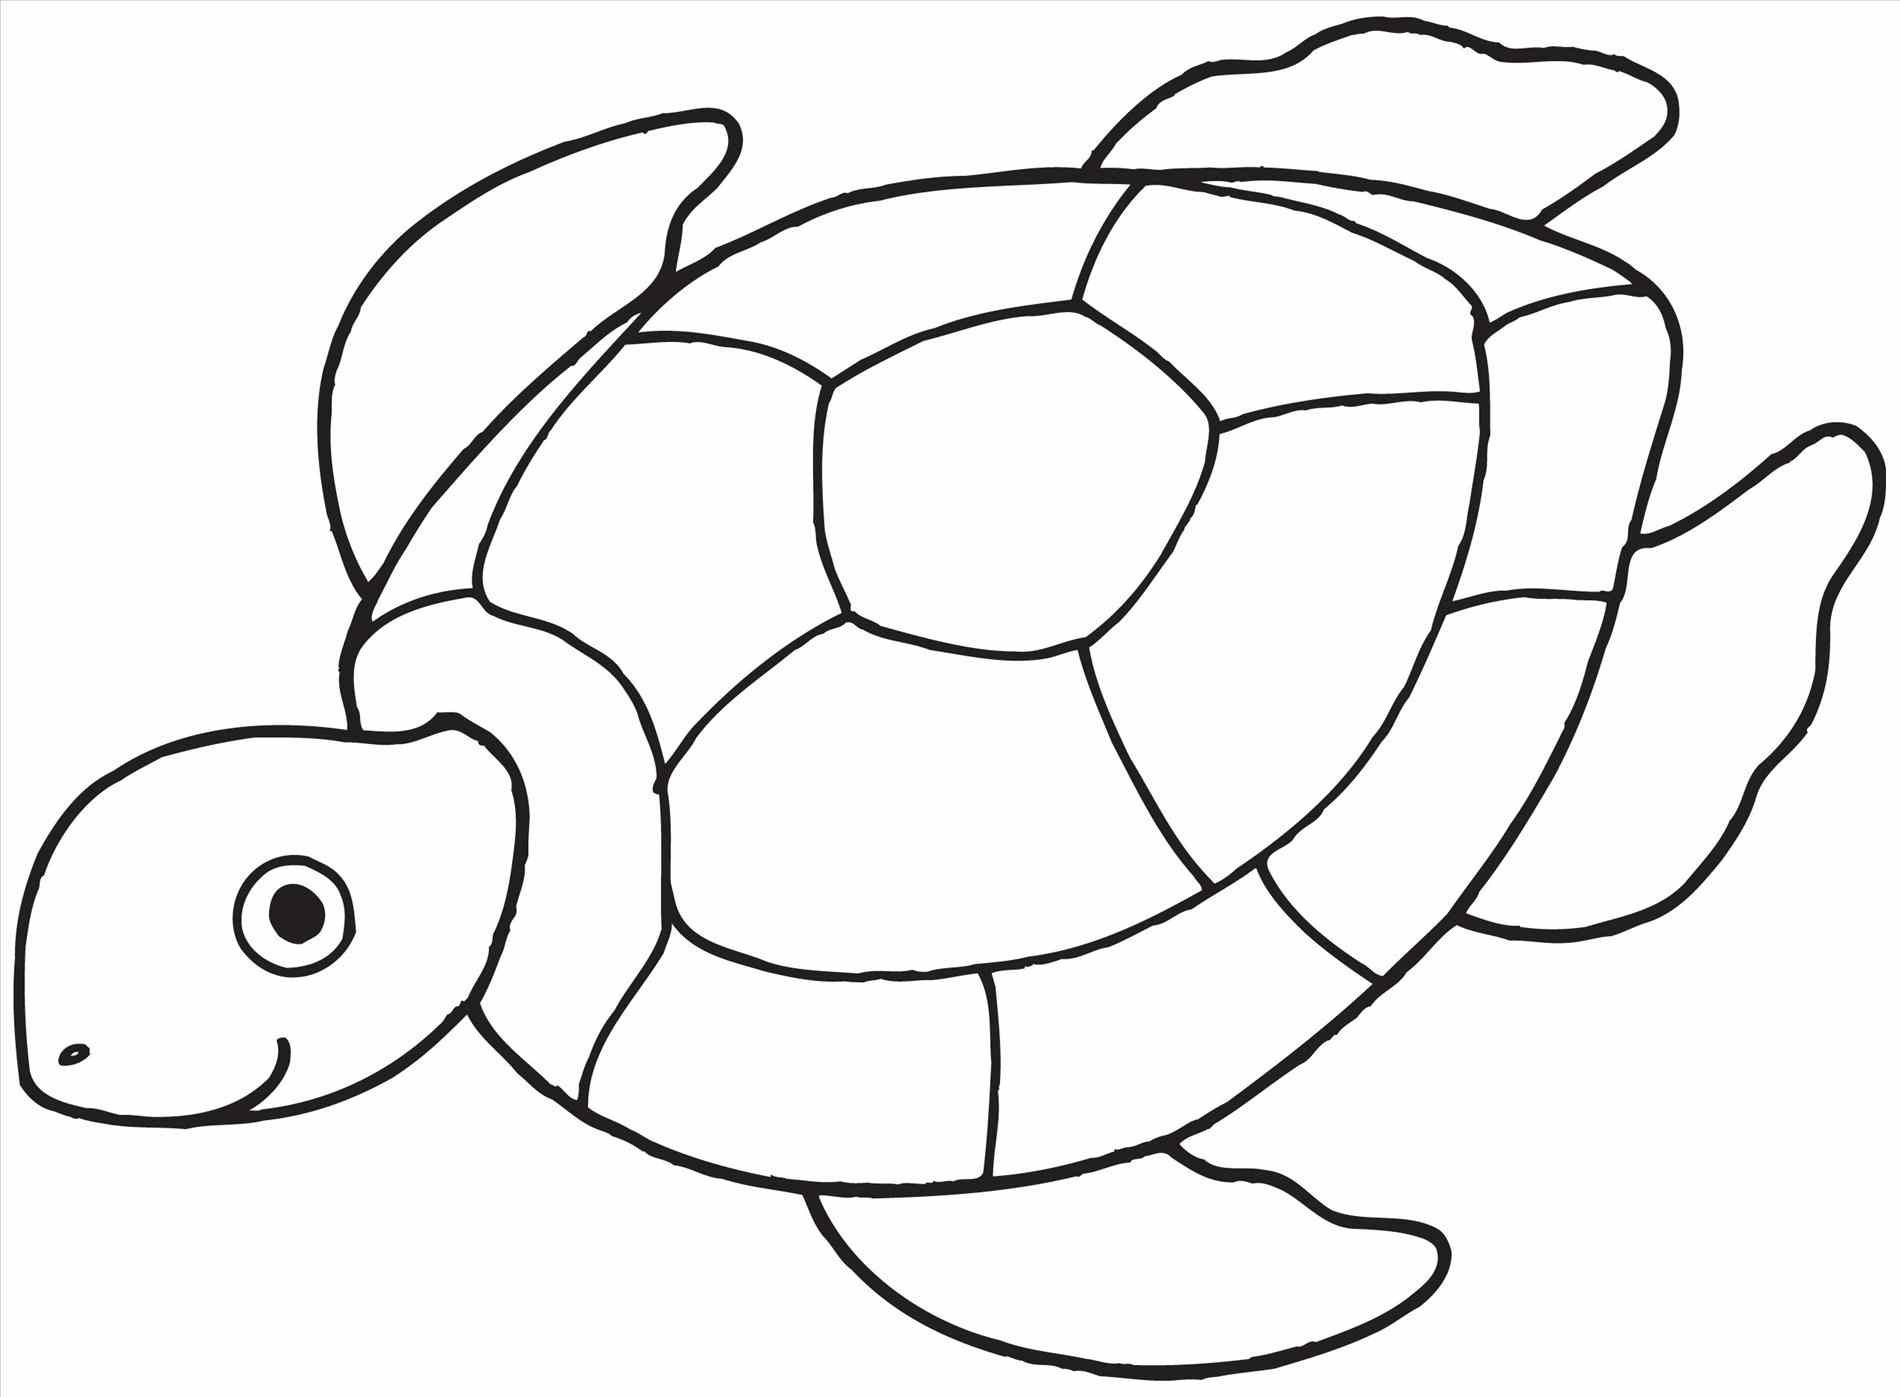 Seashell Coloring Pages Printable Me Home New Auto Market